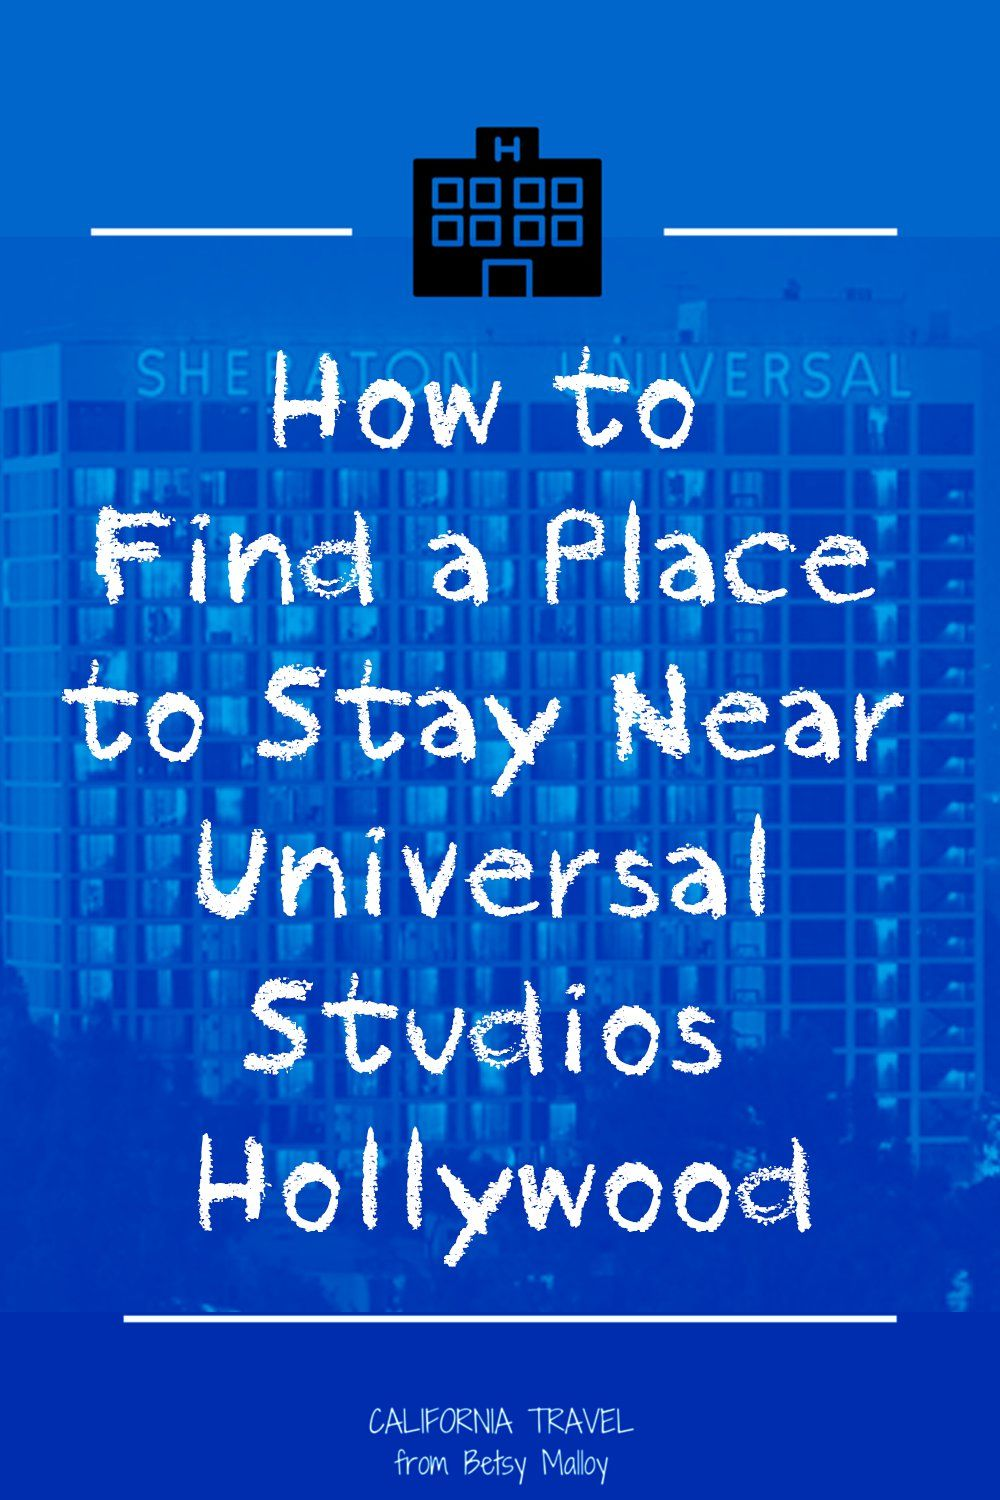 The 9 Best Hotels Near Universal Studios Hollywood To Book In 2019